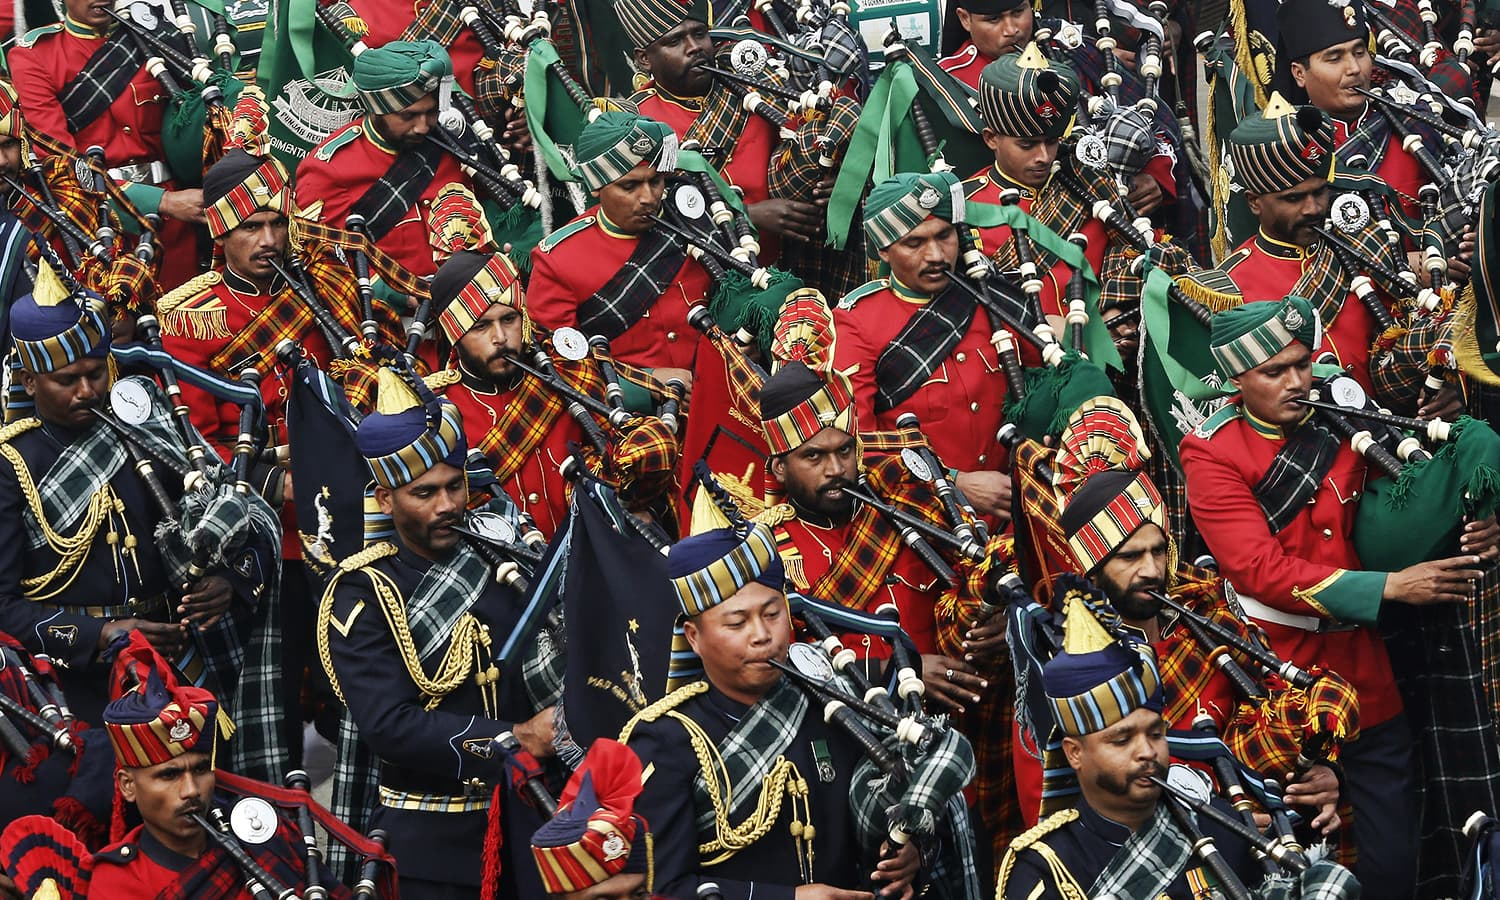 Members of the Indian military band take part in the Republic Day parade. ─ Reuters